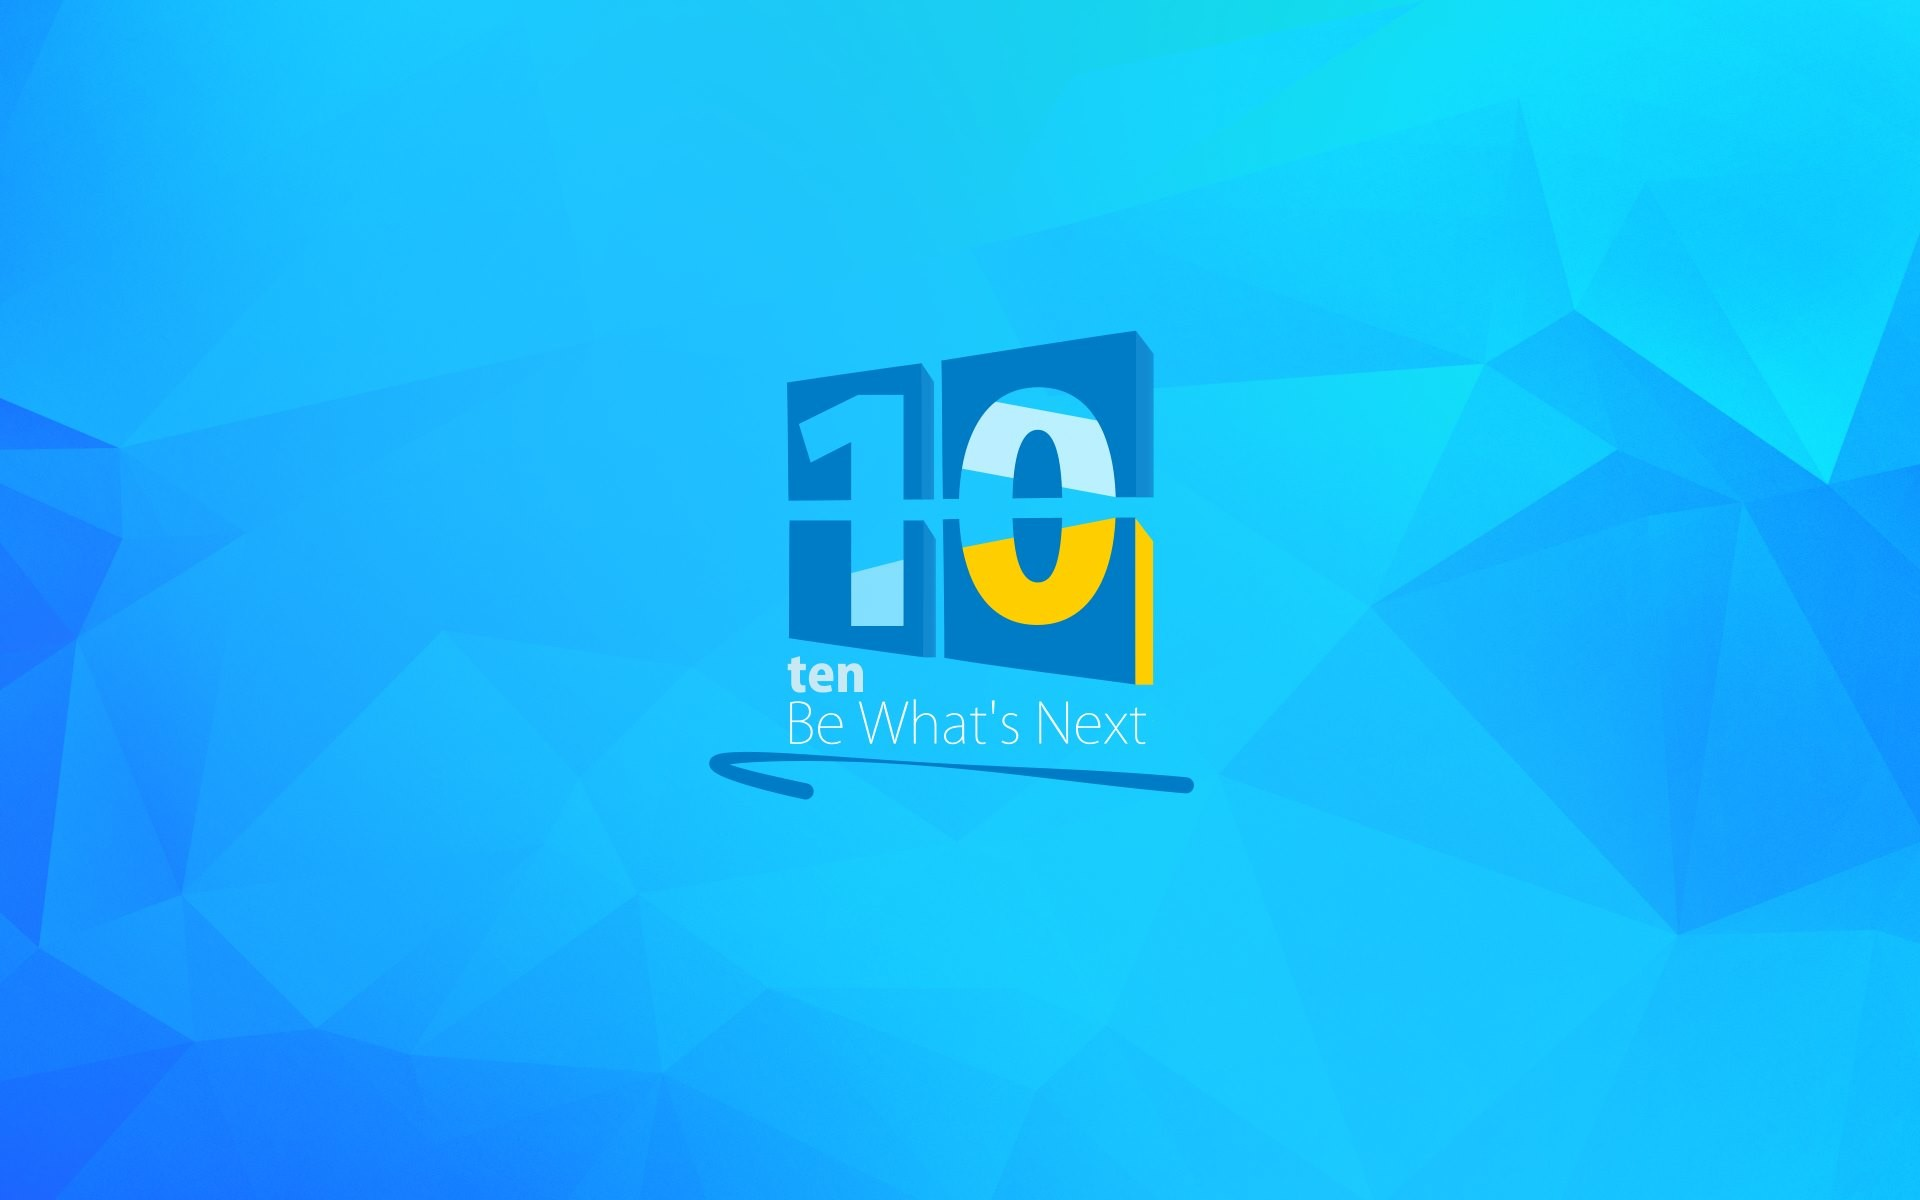 1920x1200 HD Wallpaper: Ten. Be What's Next